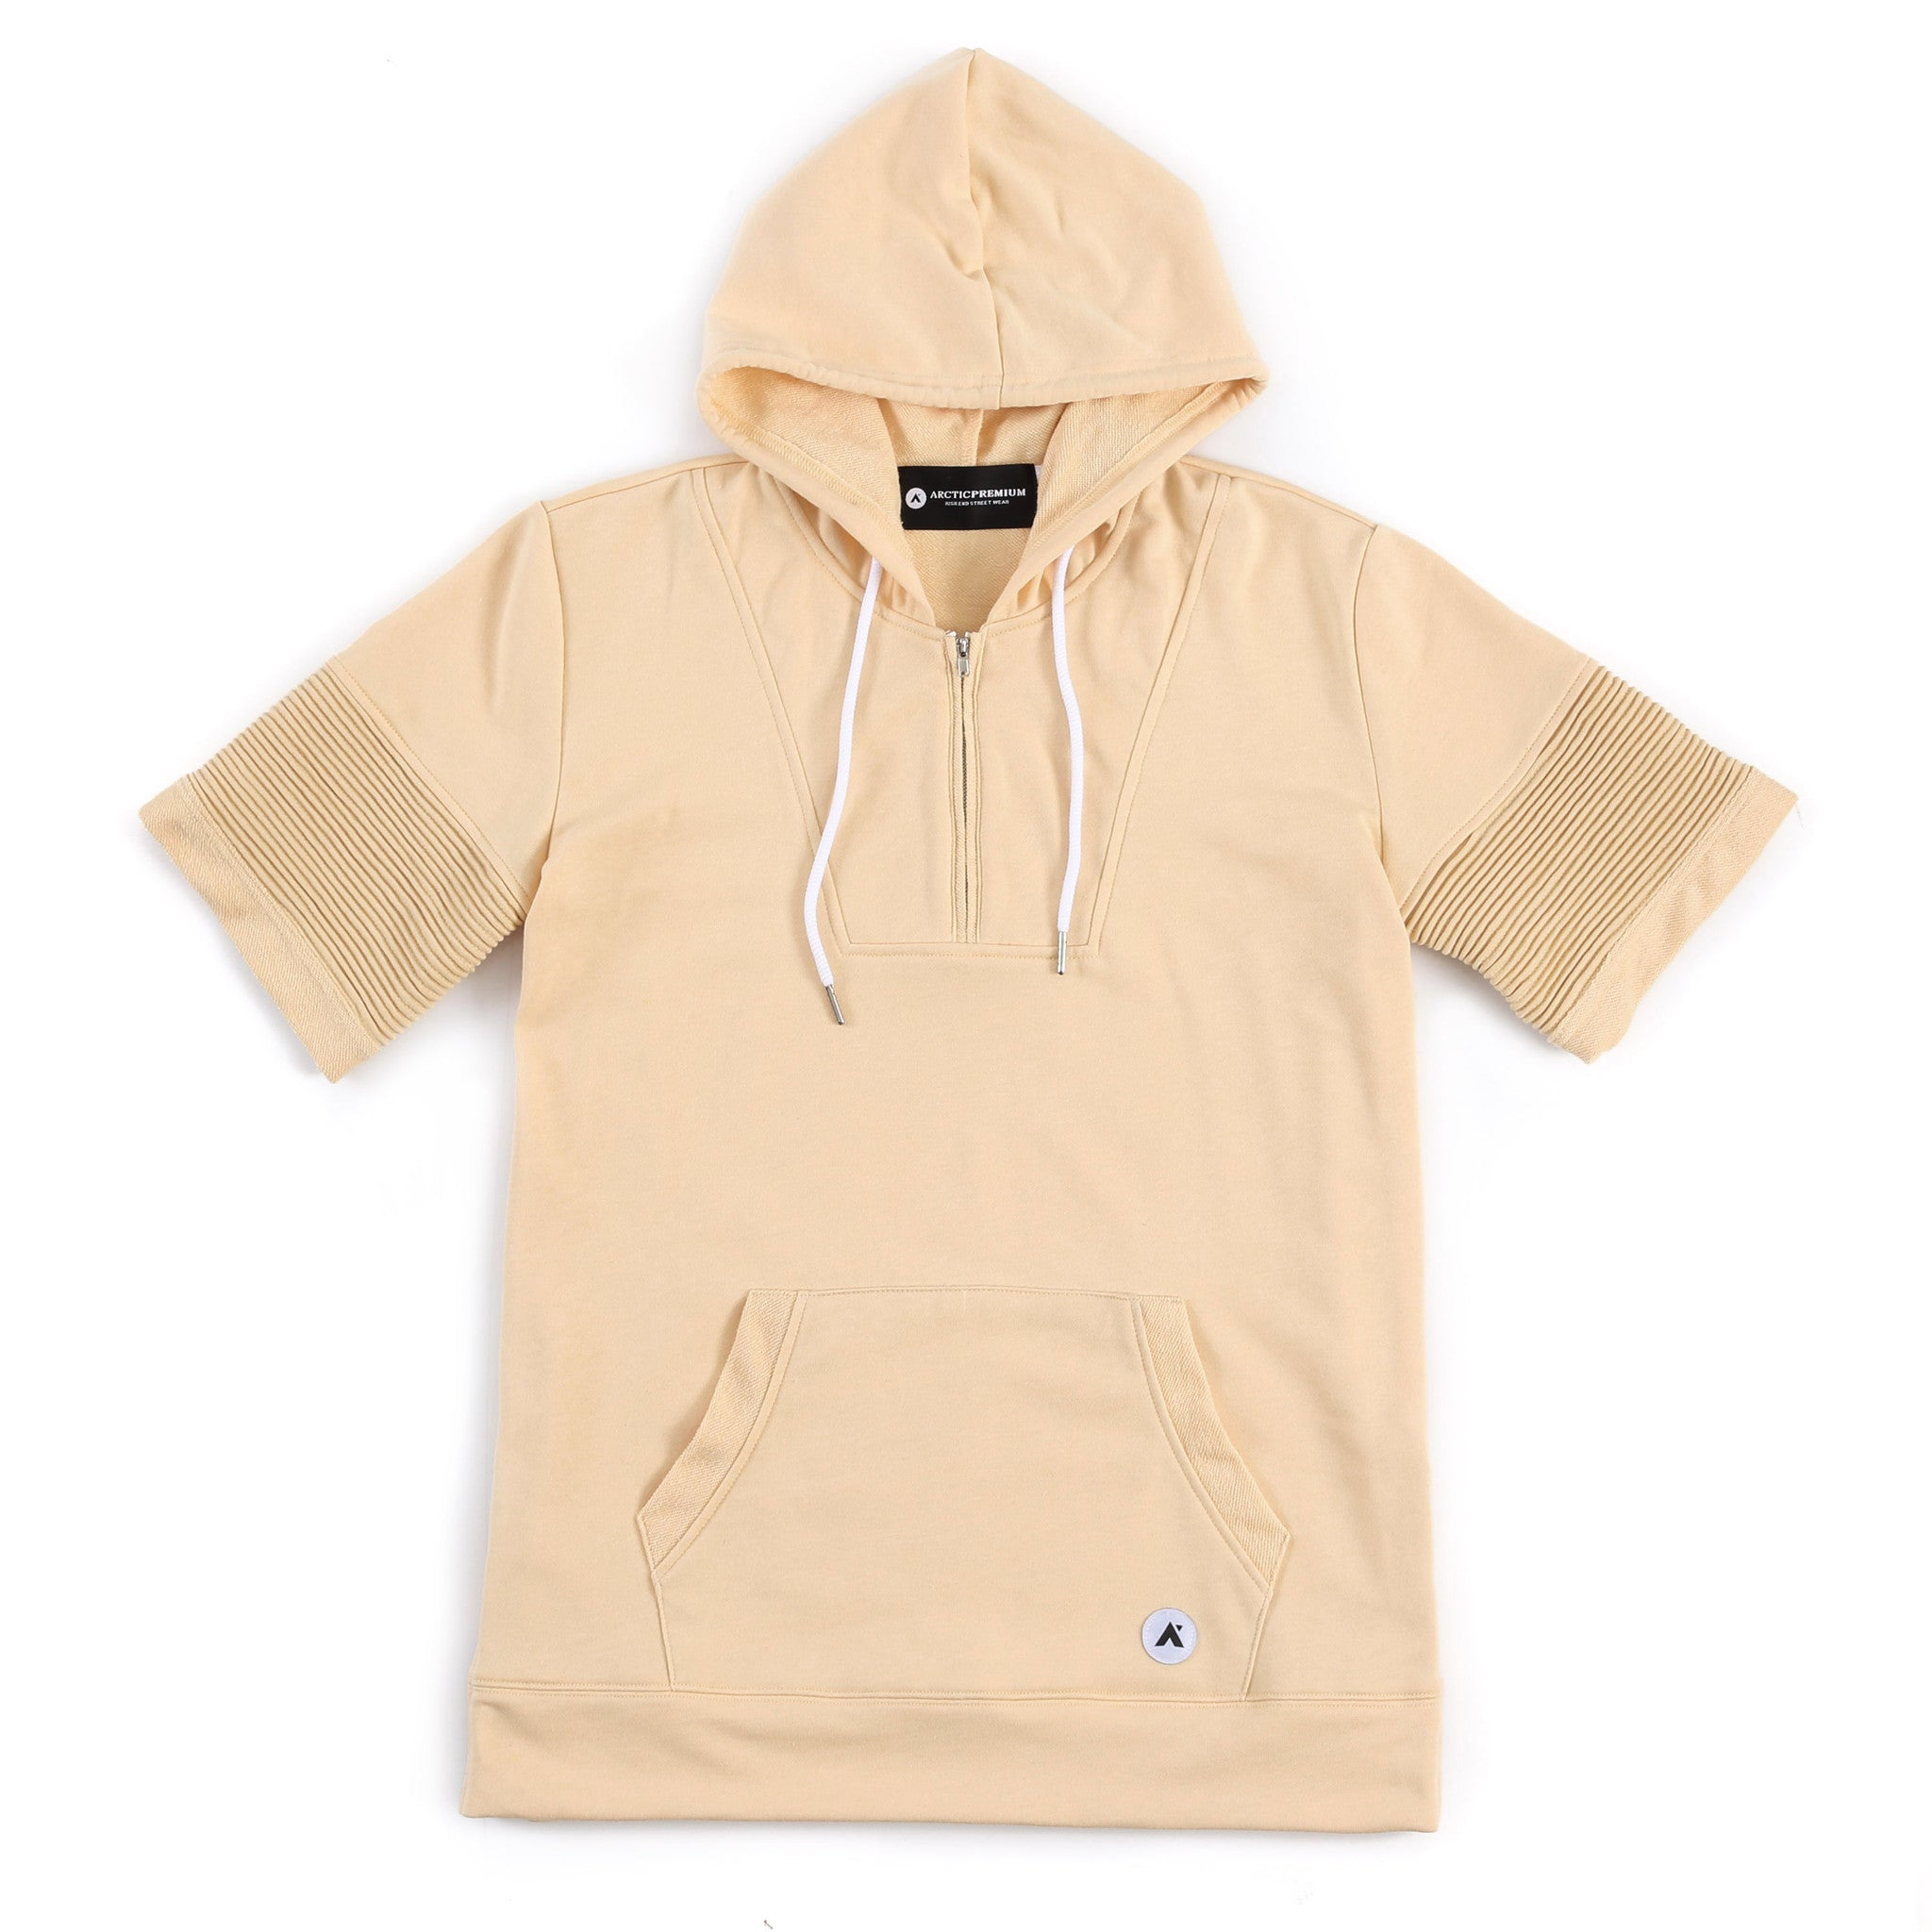 Bryson S/S Hoody (Oxford Tan)